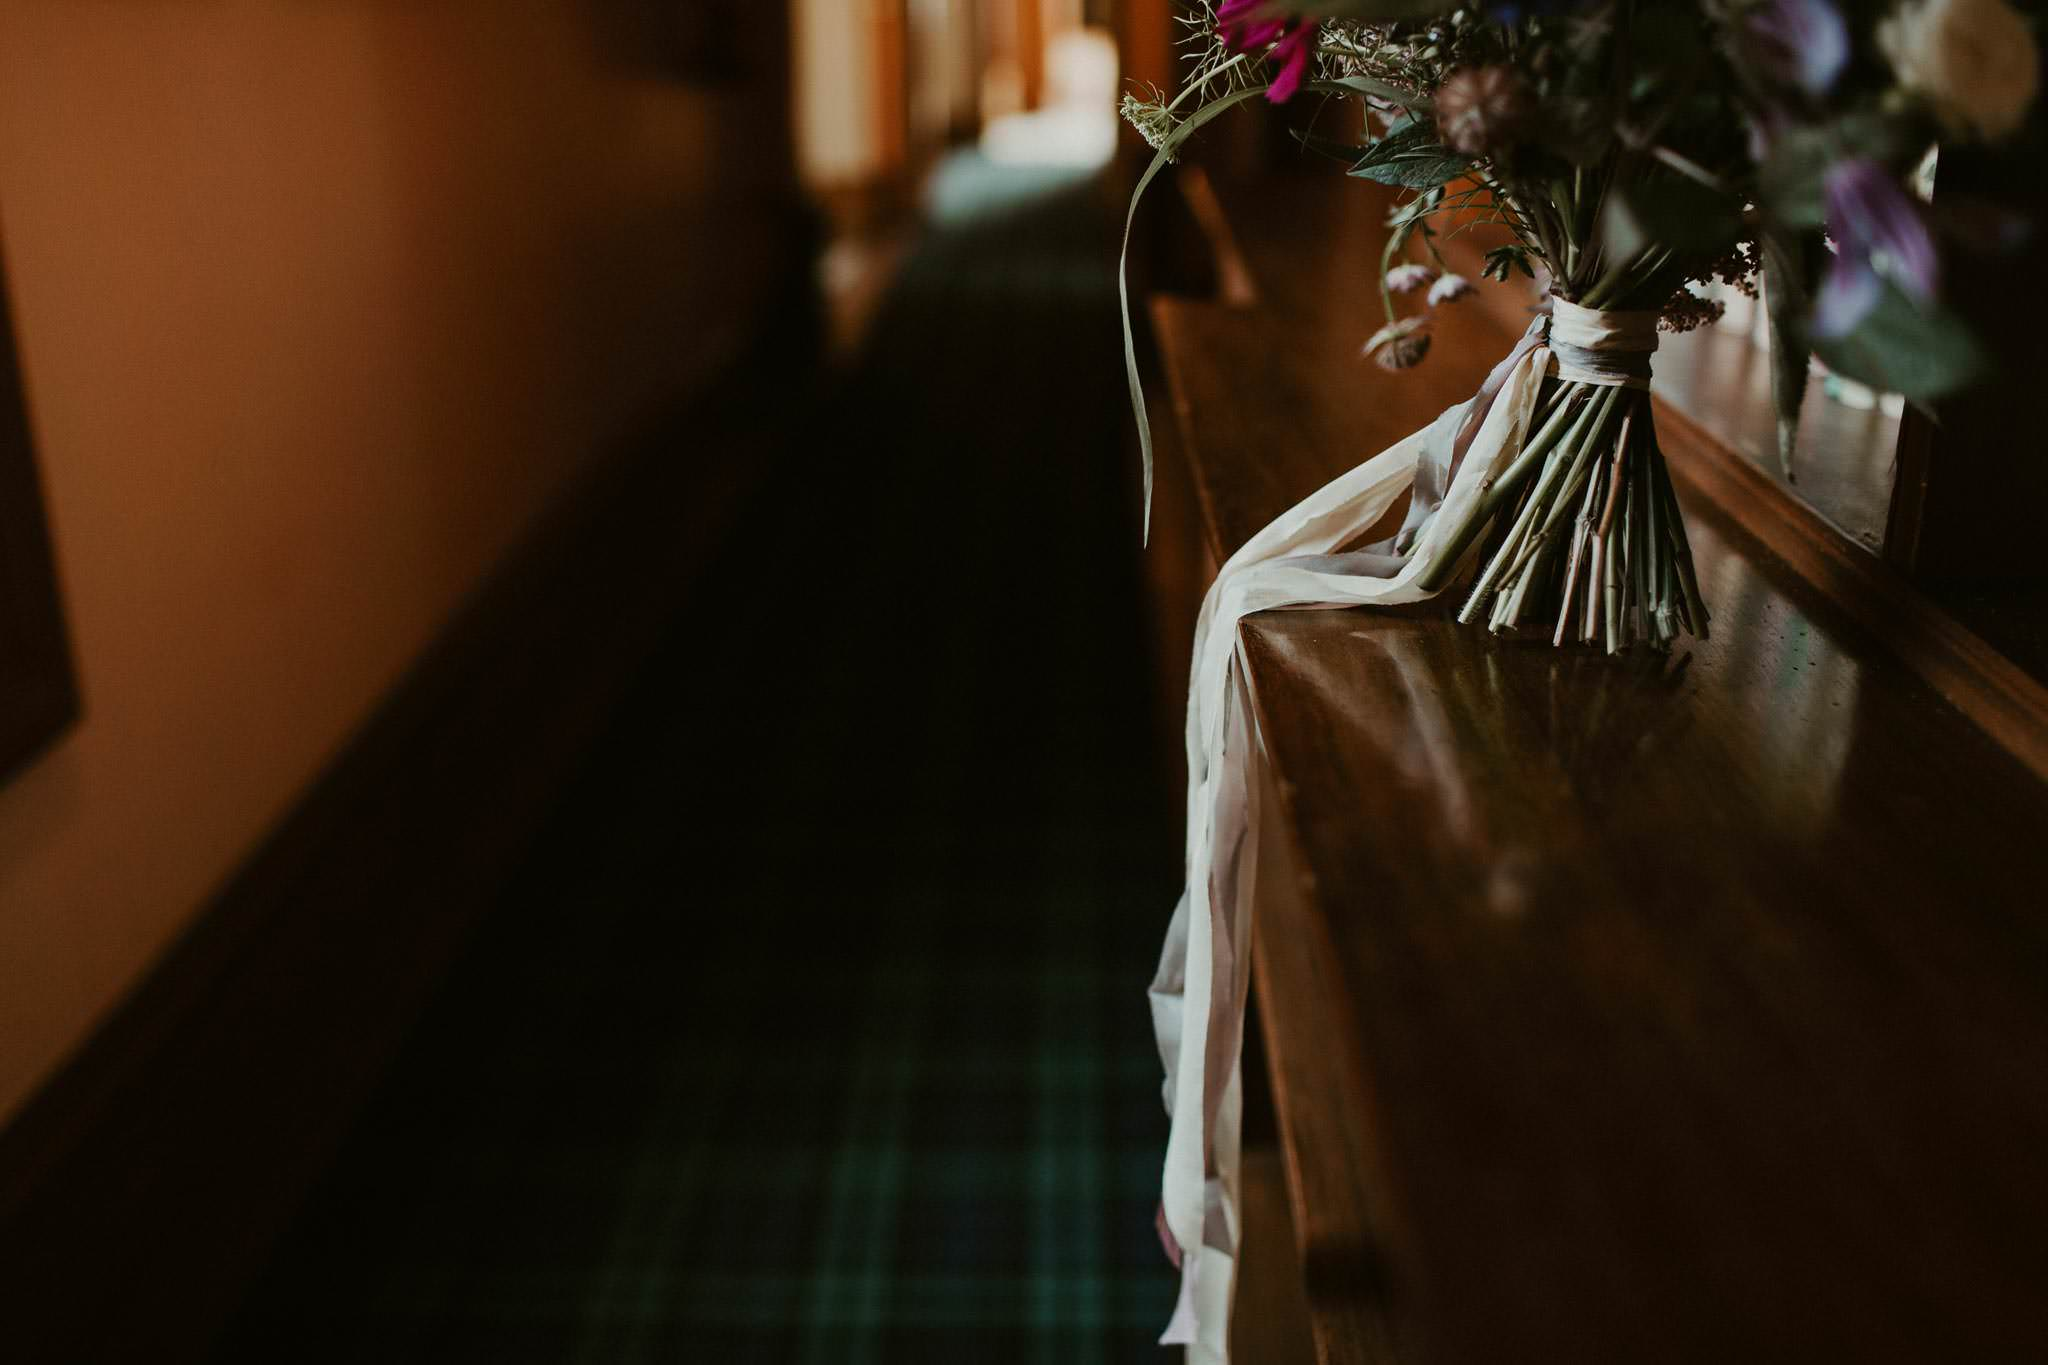 wedding-photographer-scotland-008